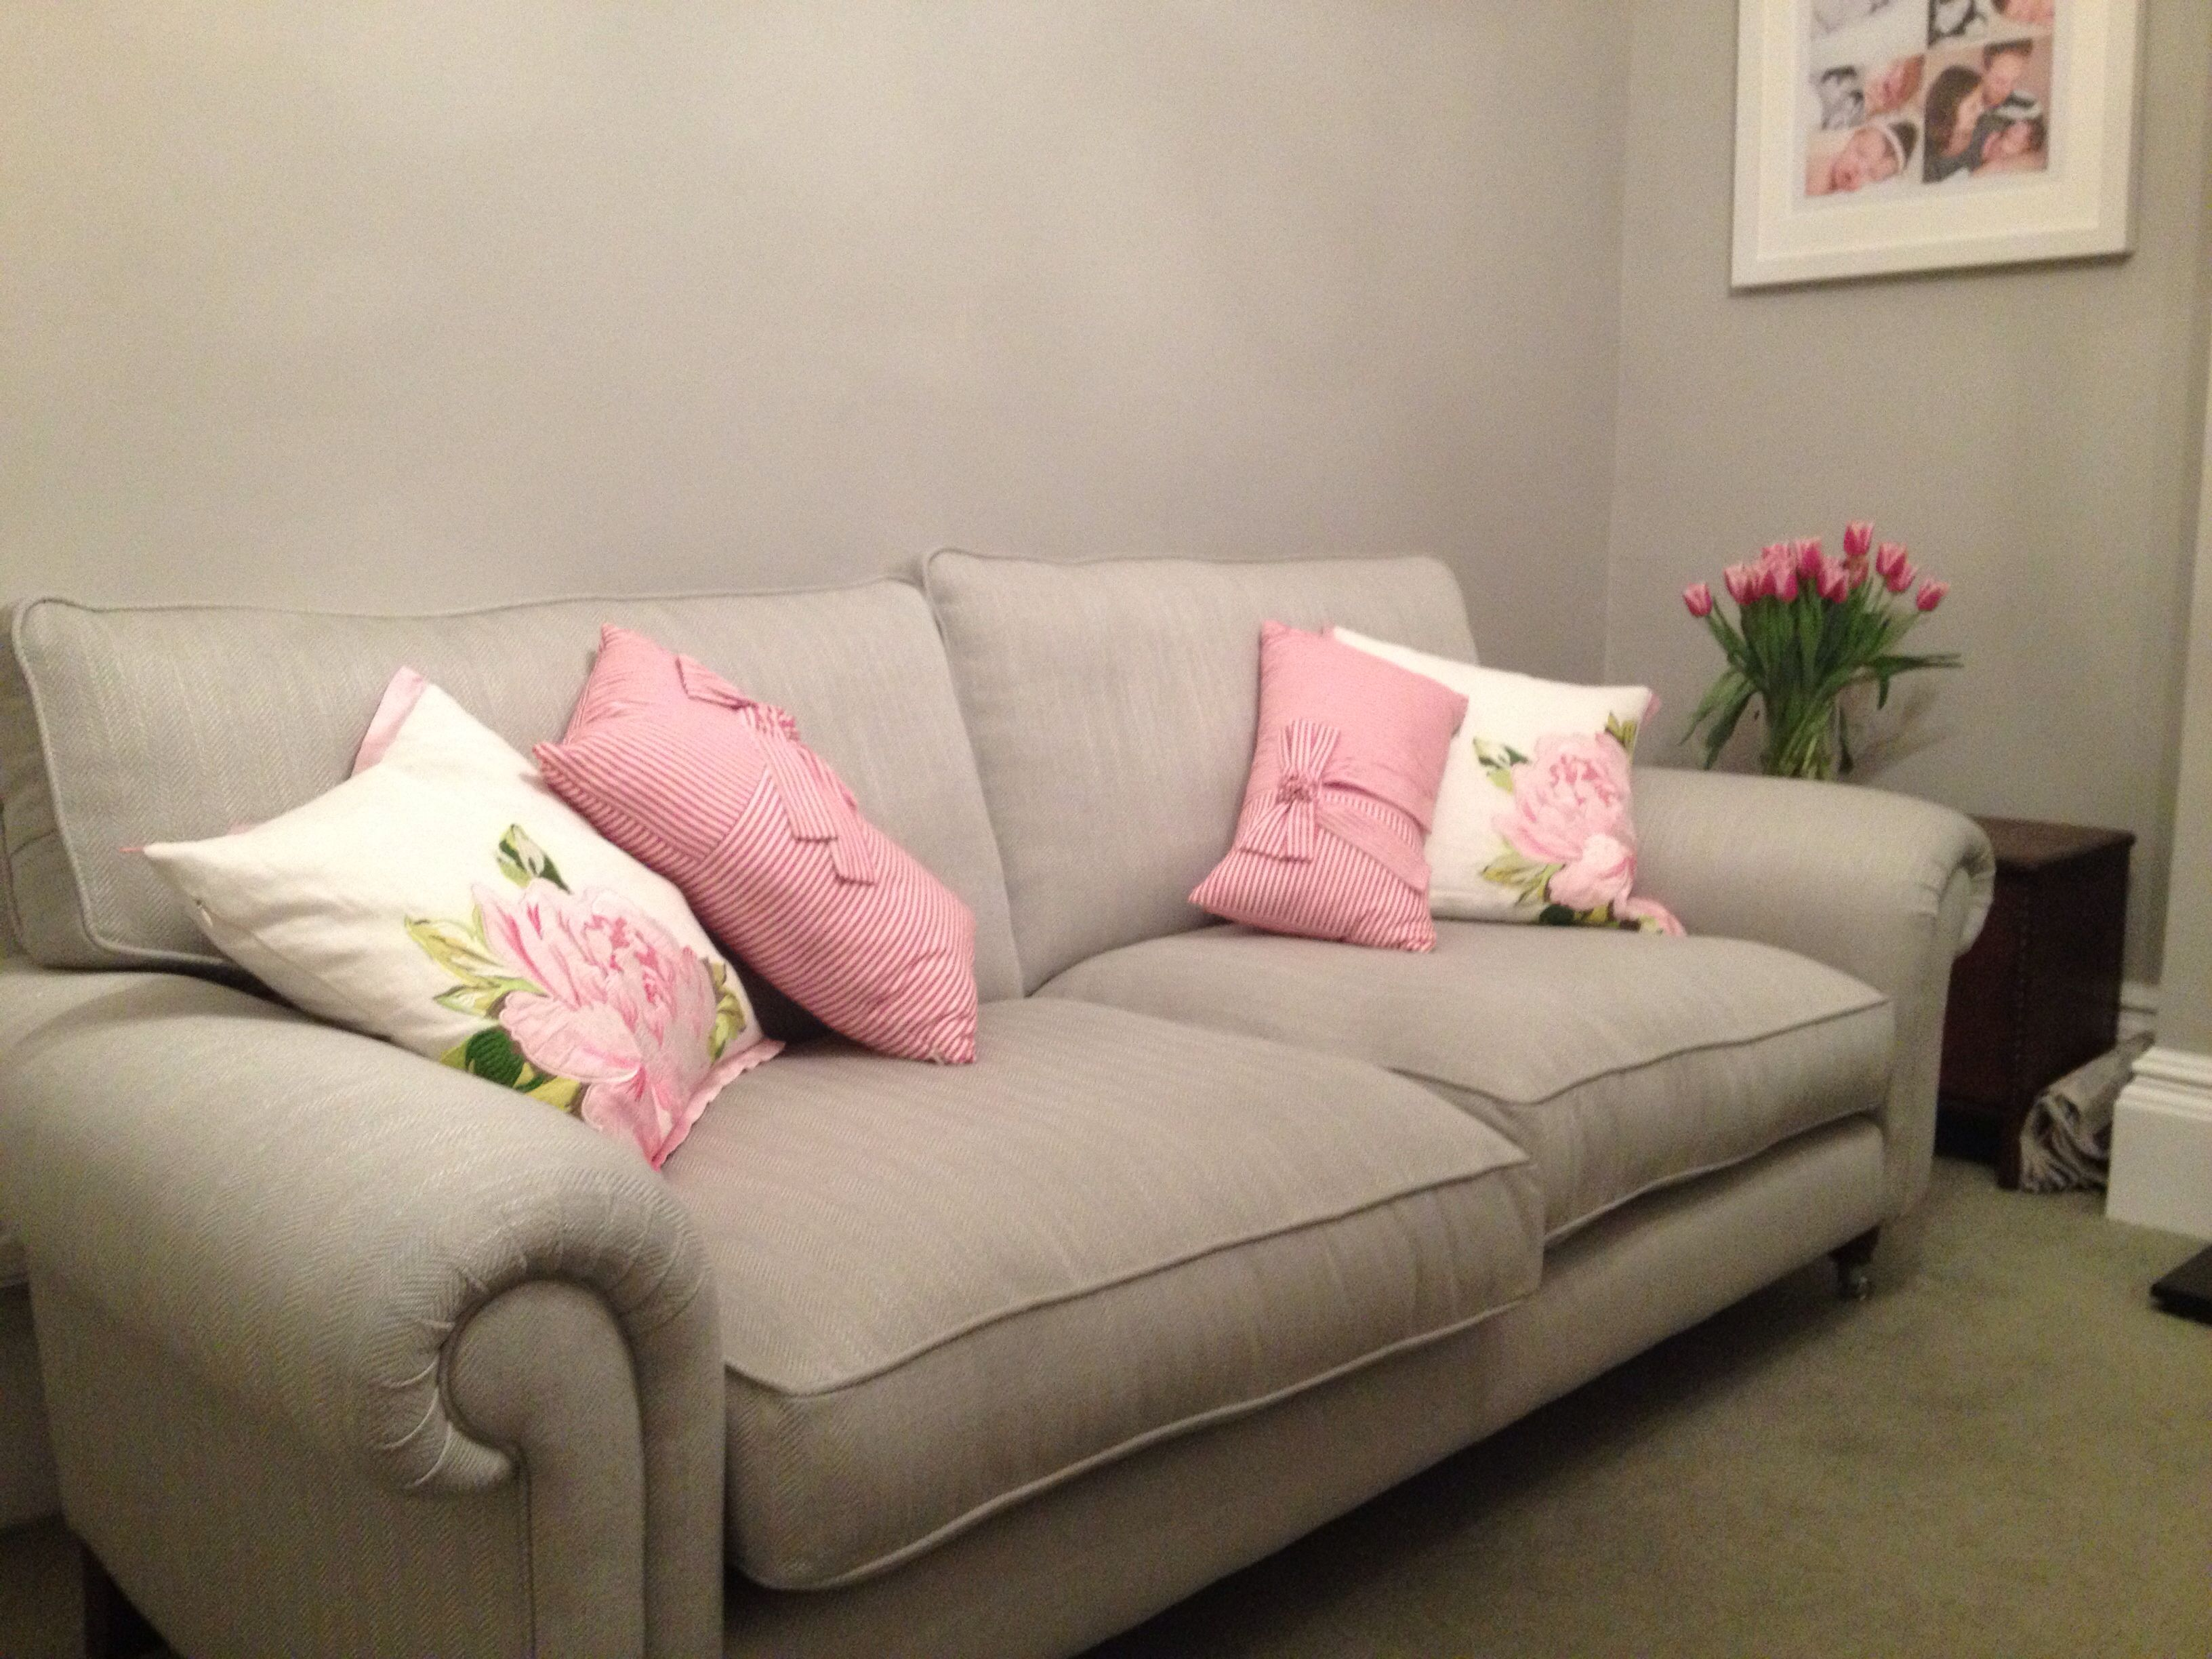 Living Room Ideas Laura Ashley my sitting room. edwin grey sofa from laura ashley, walls are